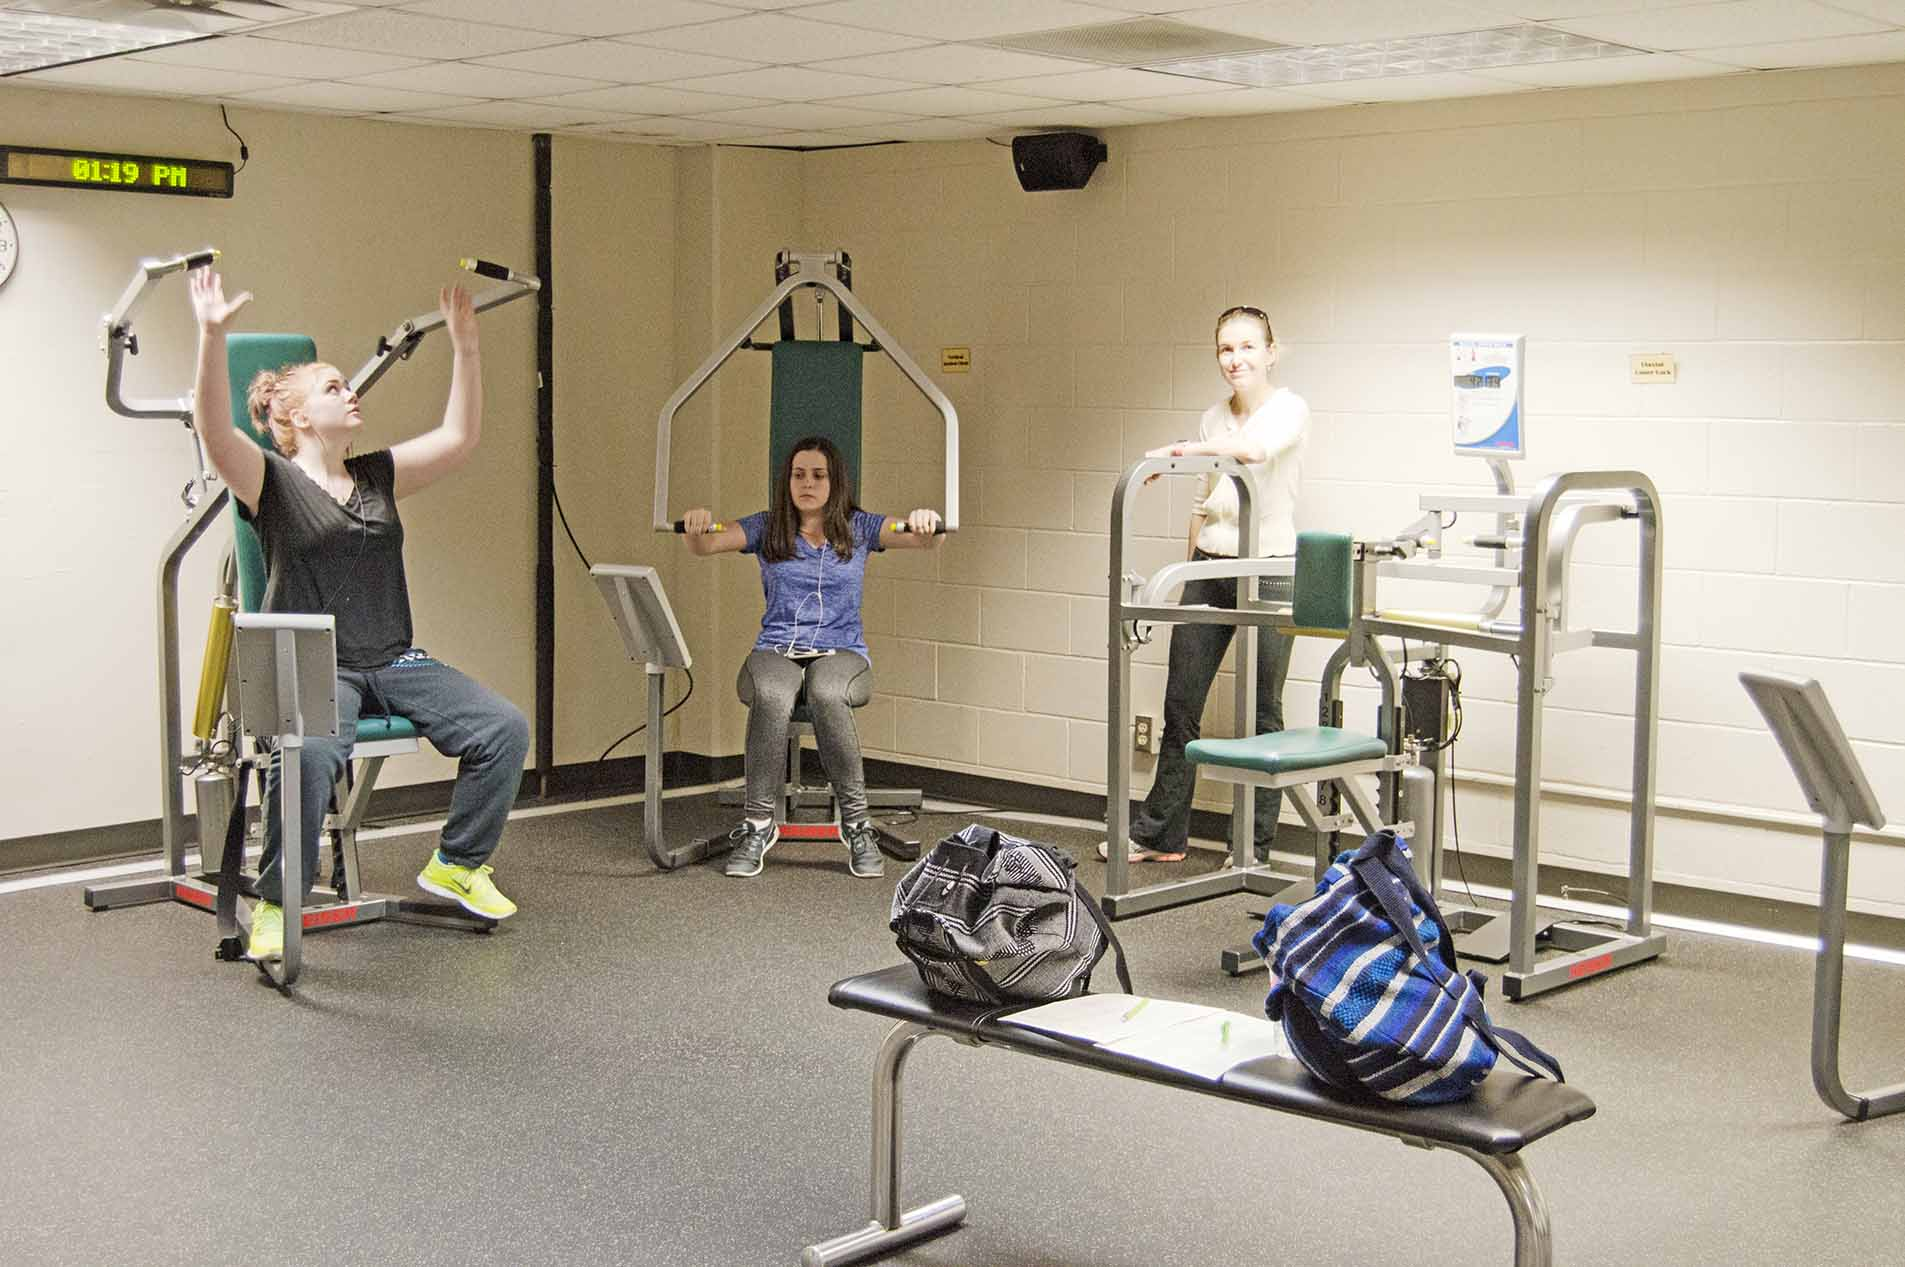 Workout spaces give many activities - The Collegian